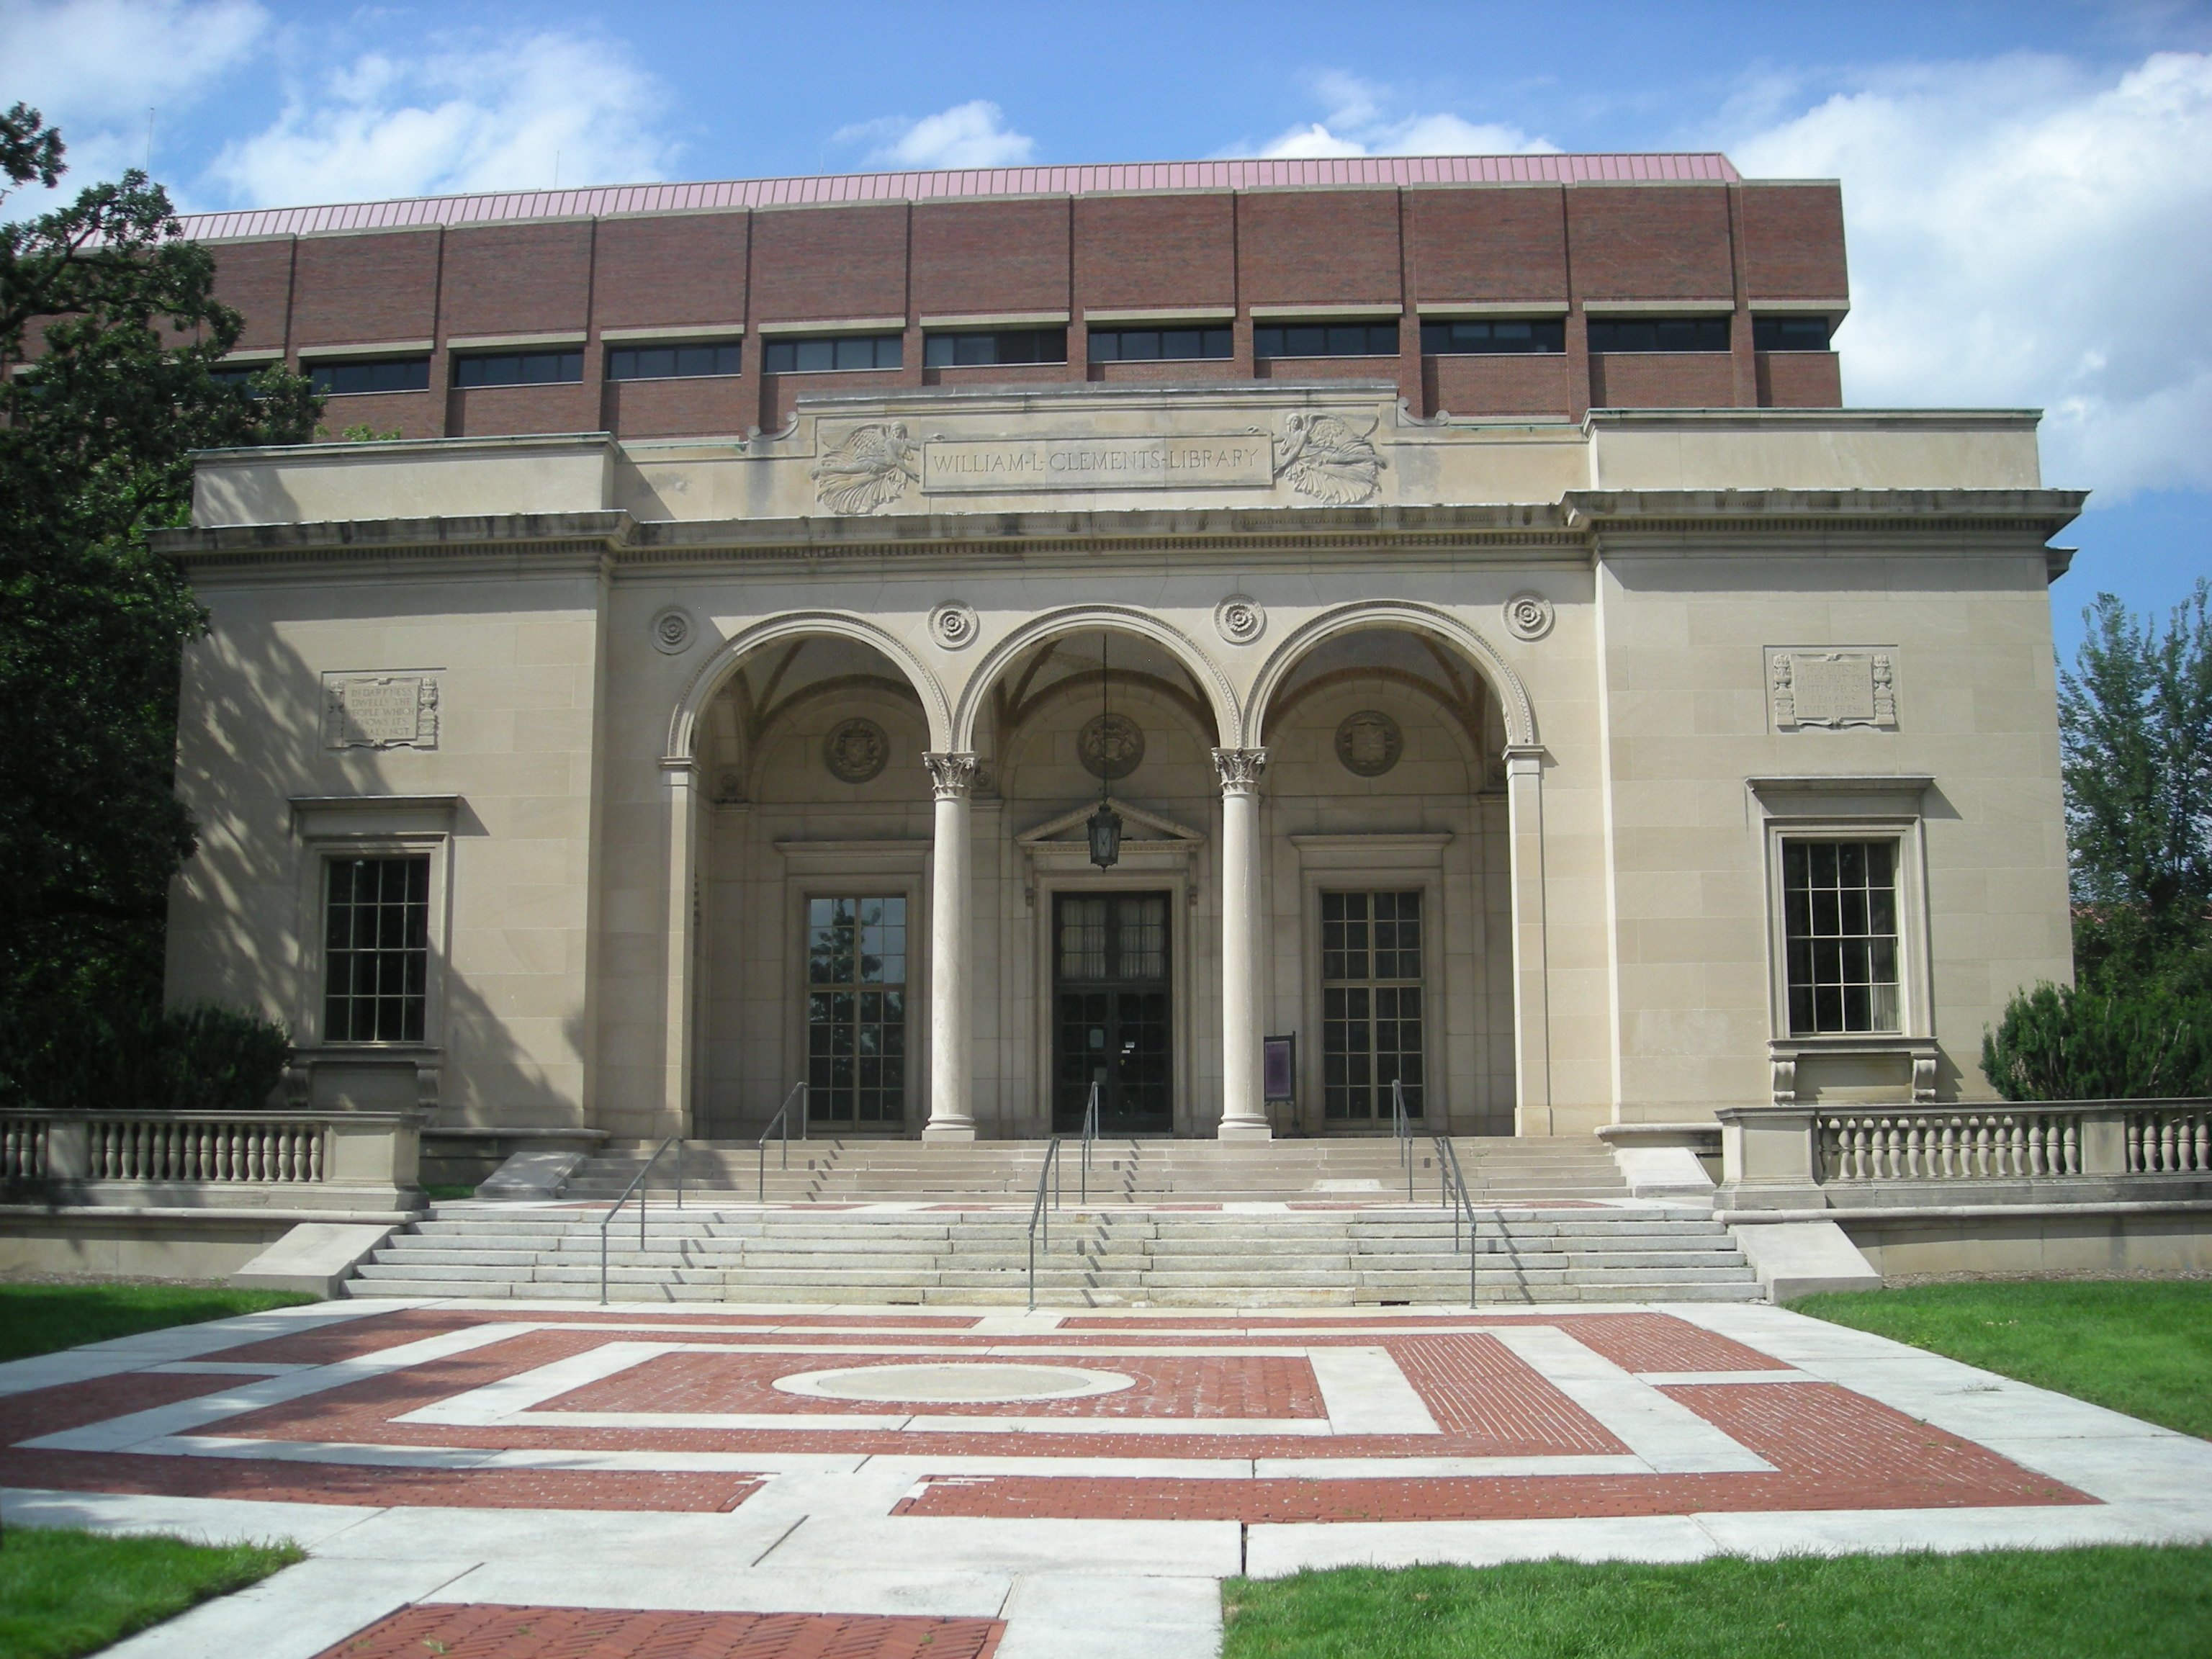 University of Michigan. William L. Clements Library